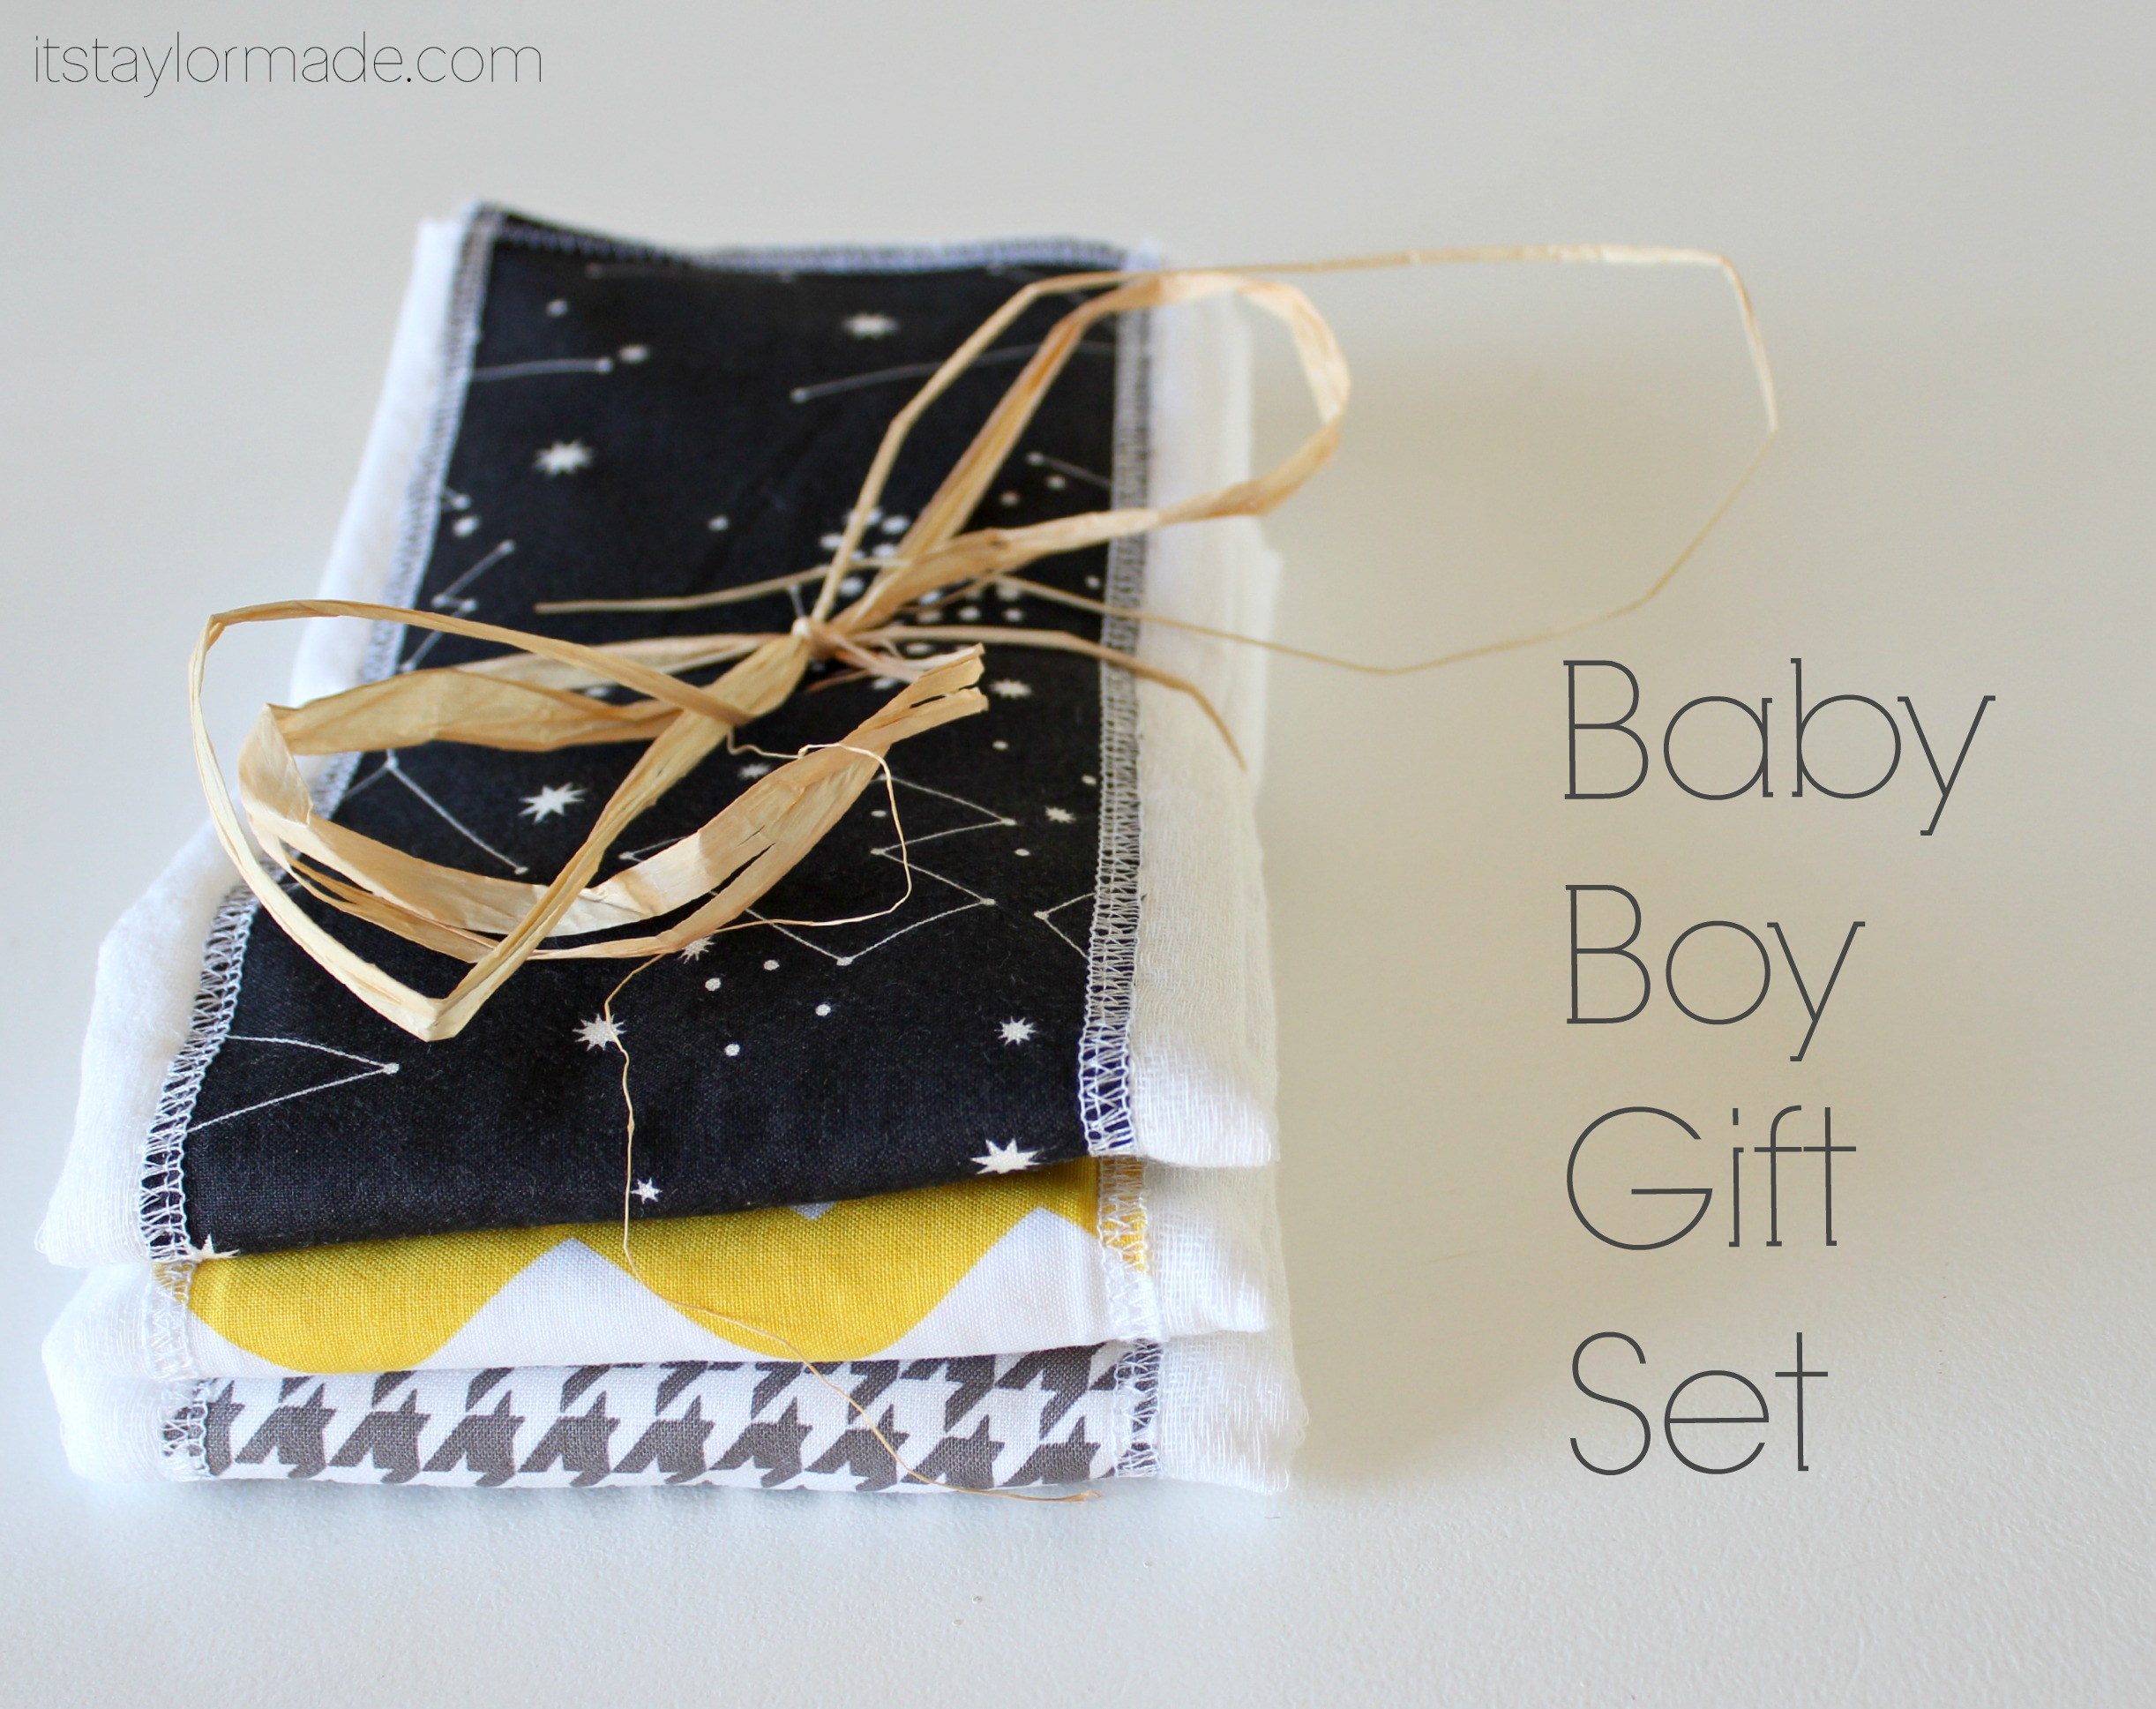 Baby Boy Gift Set Taylormade